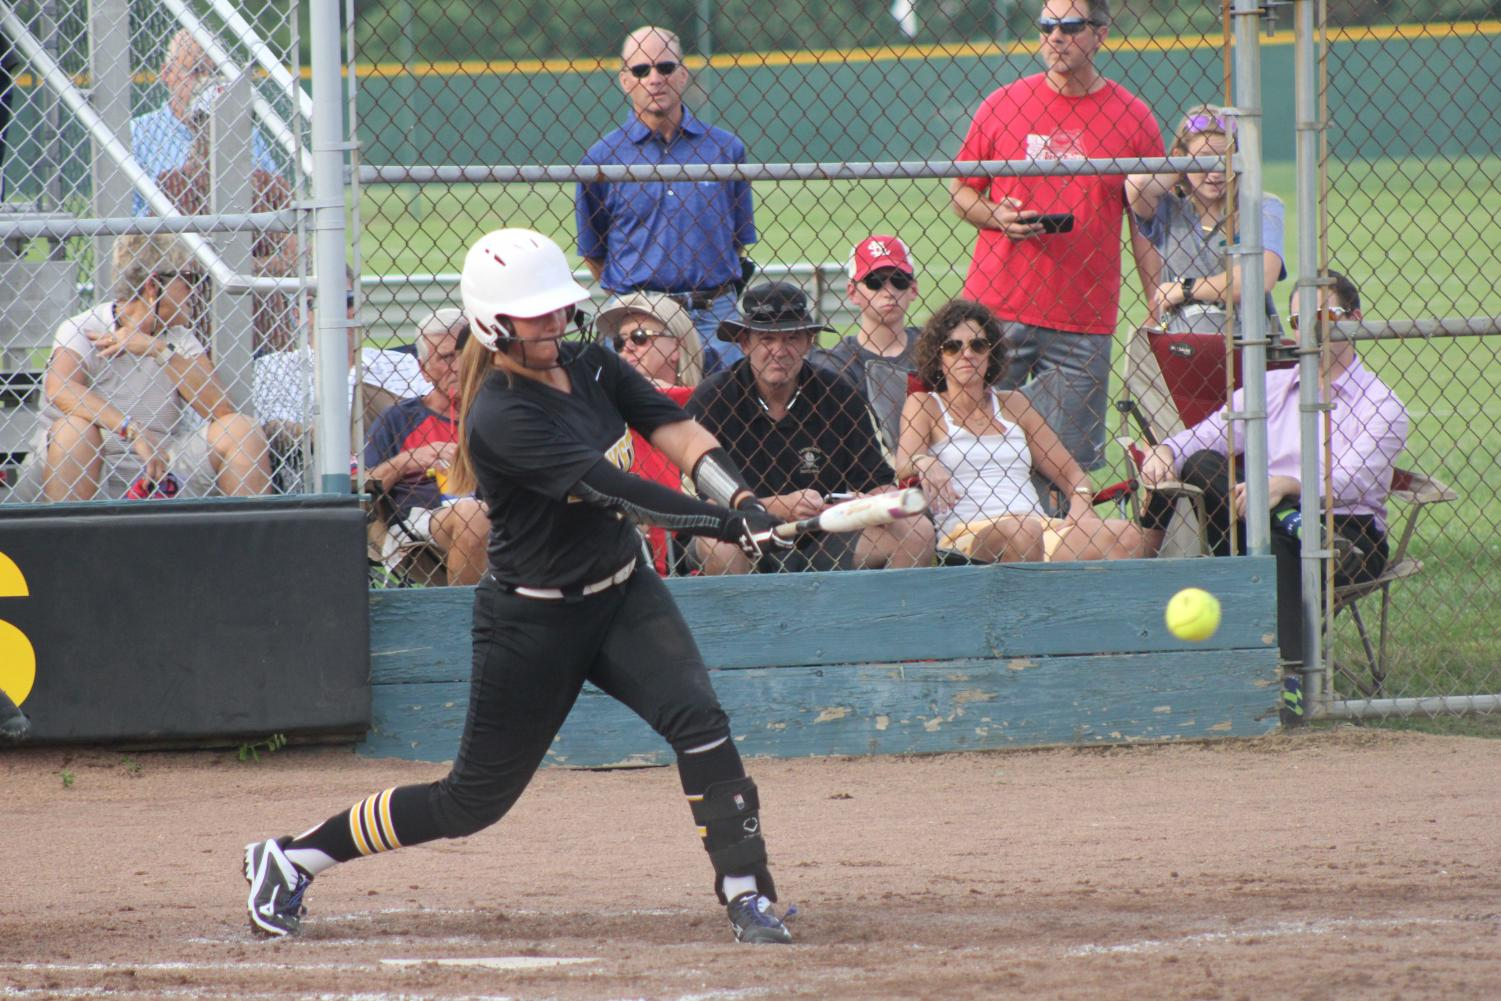 Keeping+her+eyes+on+the+ball%2C+junior+Hannah+Long+hits+a+ground+ball+down+the+third+base+line.+Long+has+a+.300+batting+average+and++team+high+of+four+RBIs+on+the+season.